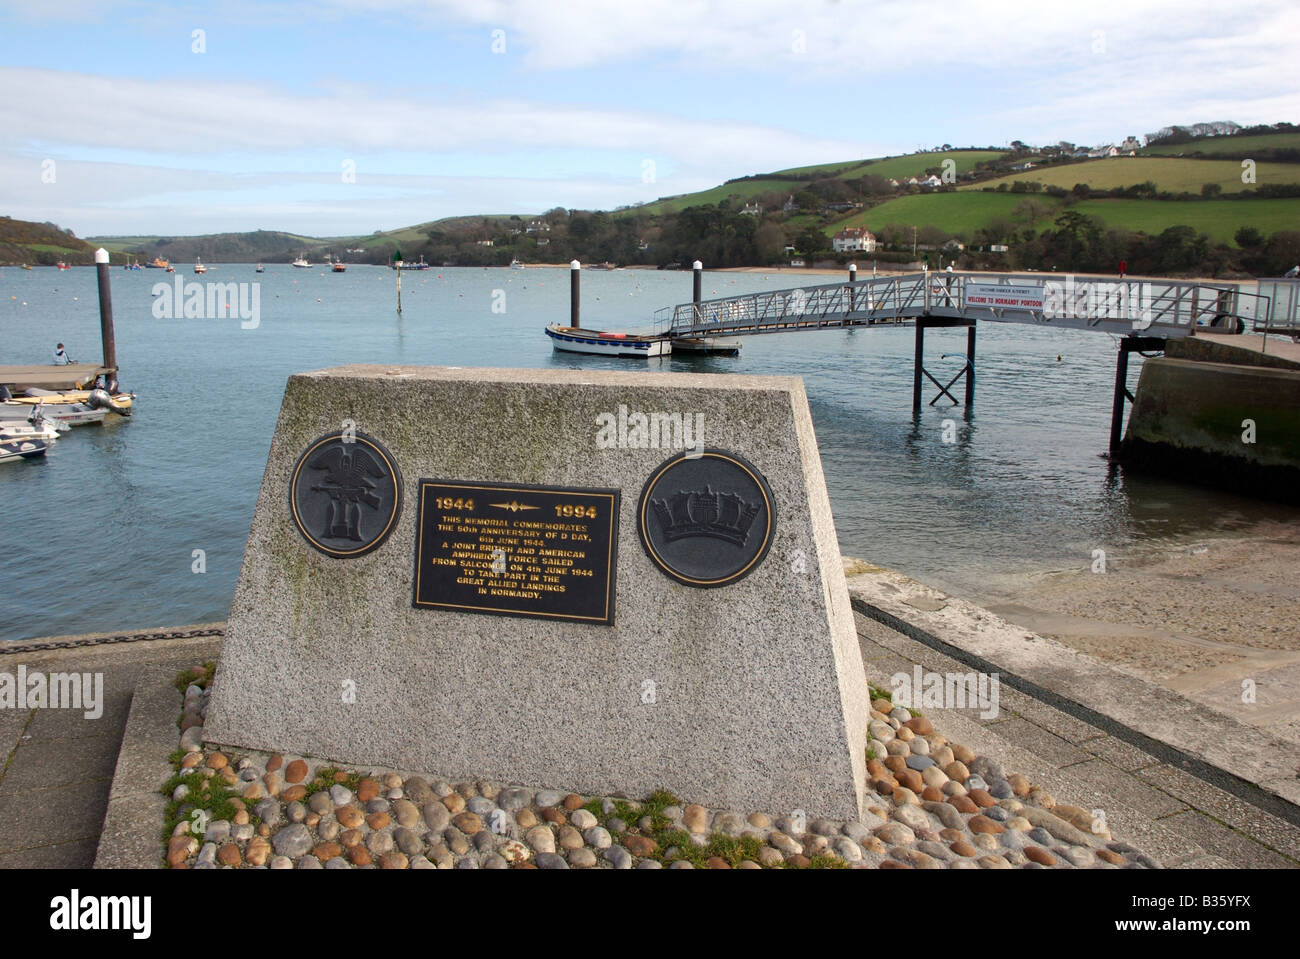 1944 DDay landings Fiftieth anniversary stone, Salcombe, Devon, UK - Stock Image